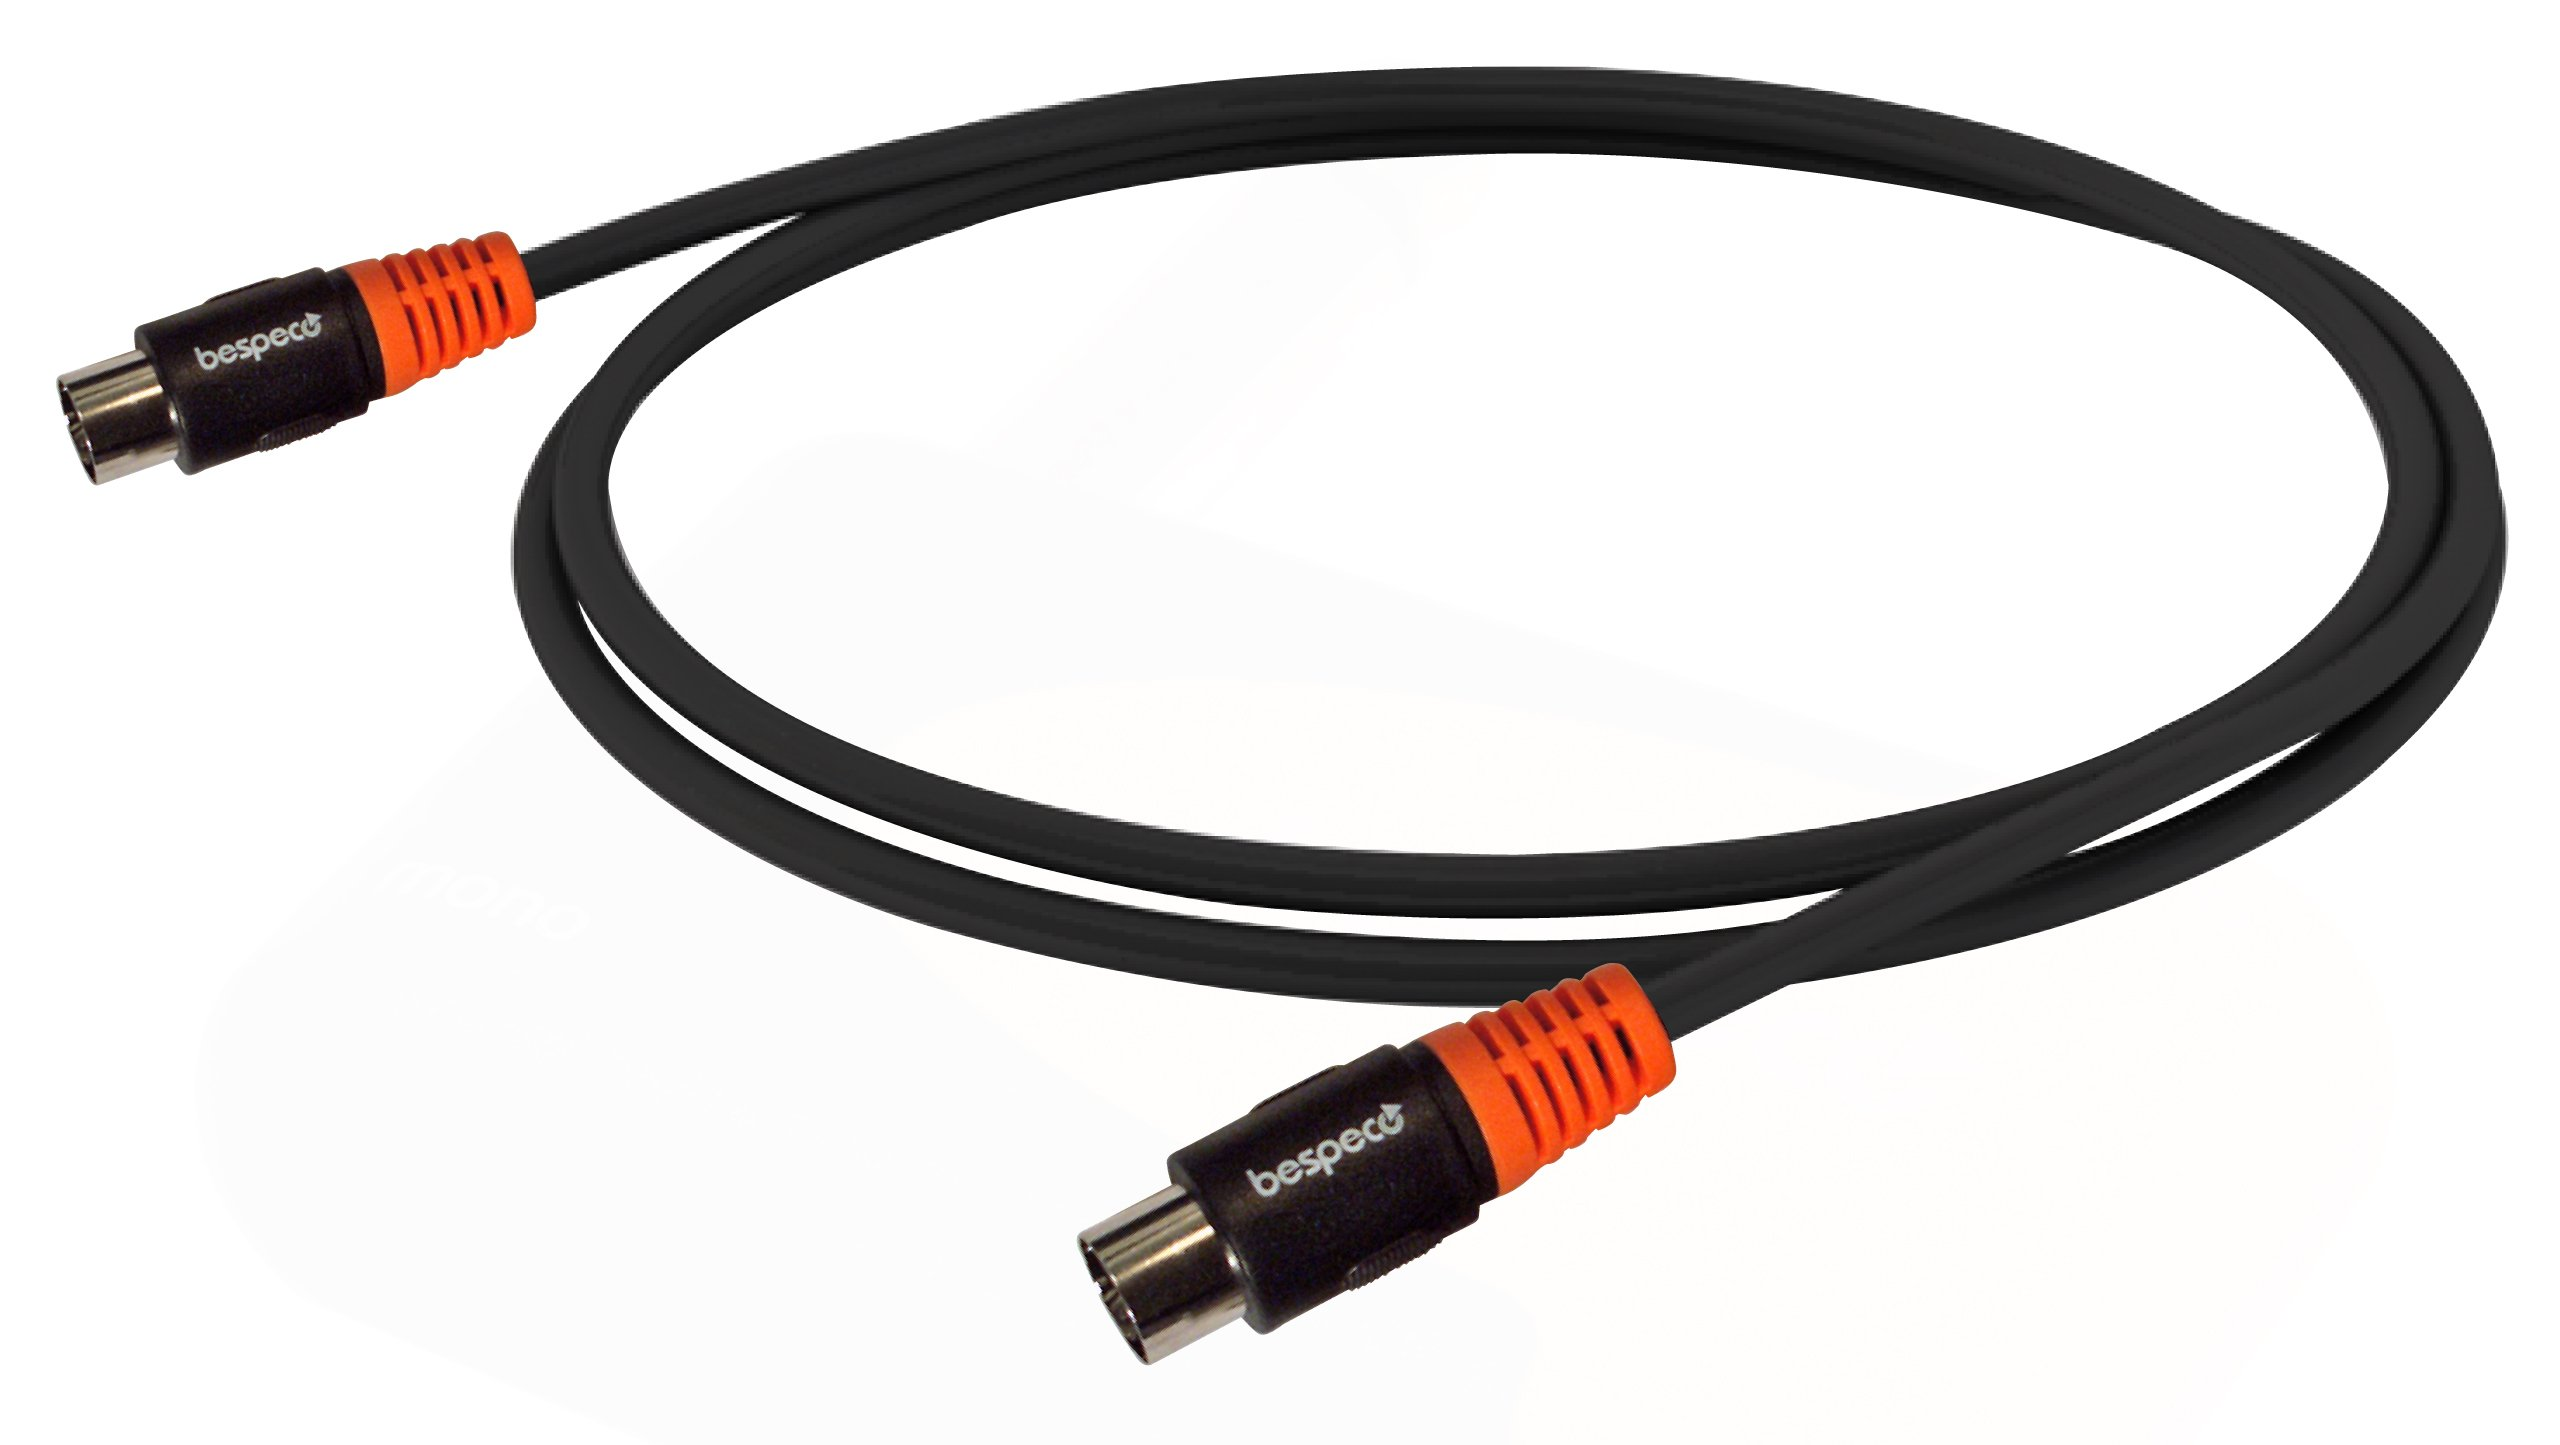 Bespeco Silos Series 9.8-Feet MIDI Cable with 5-Pole DIN Connectors